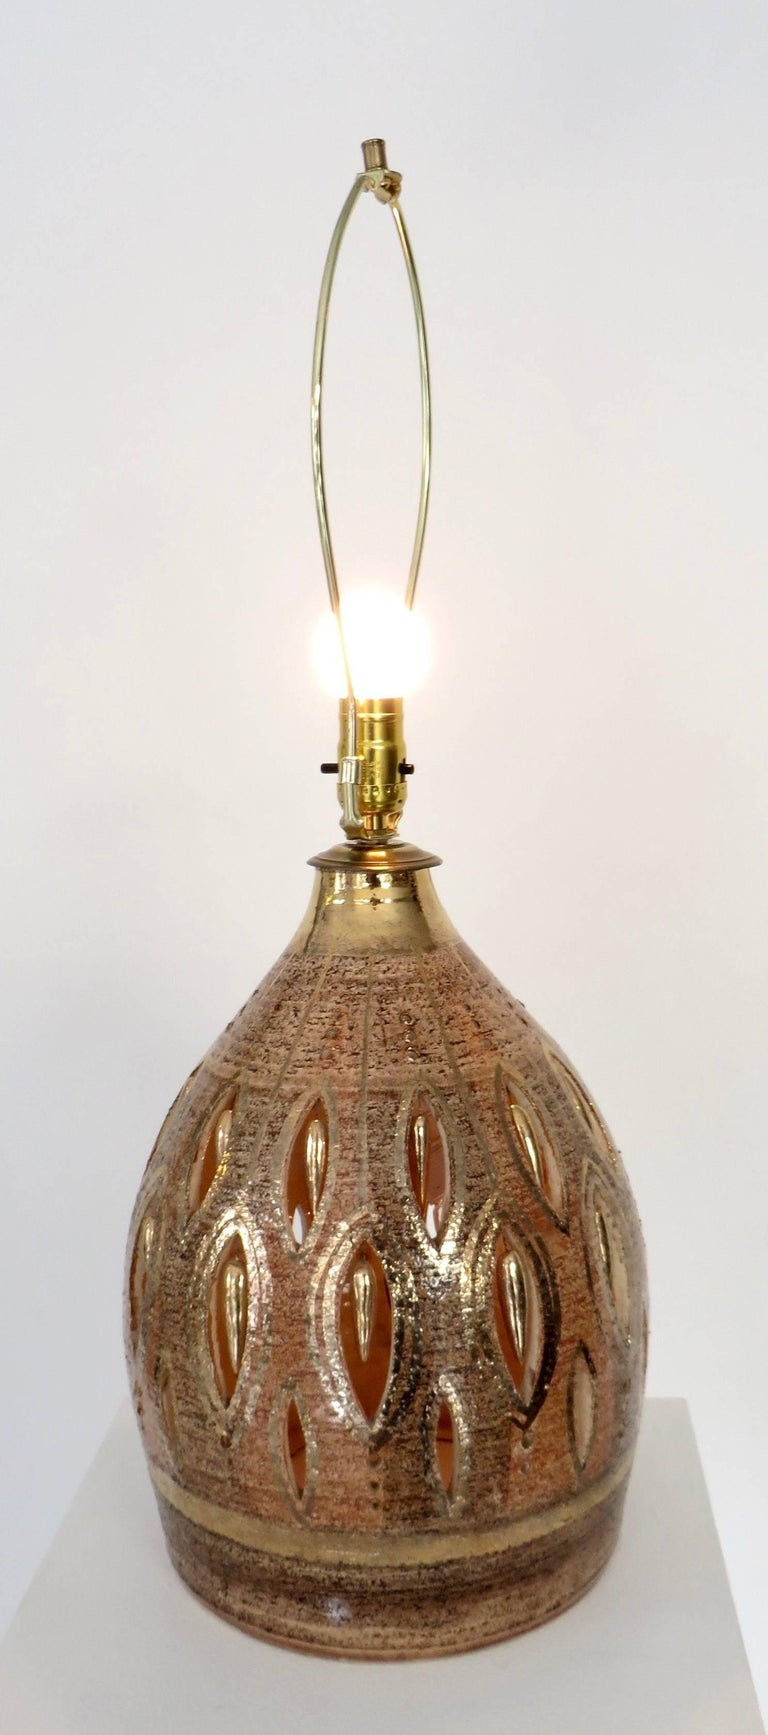 French Glazed and Incised Ceramic Table Lamp by Artist Georges Pelletier  5